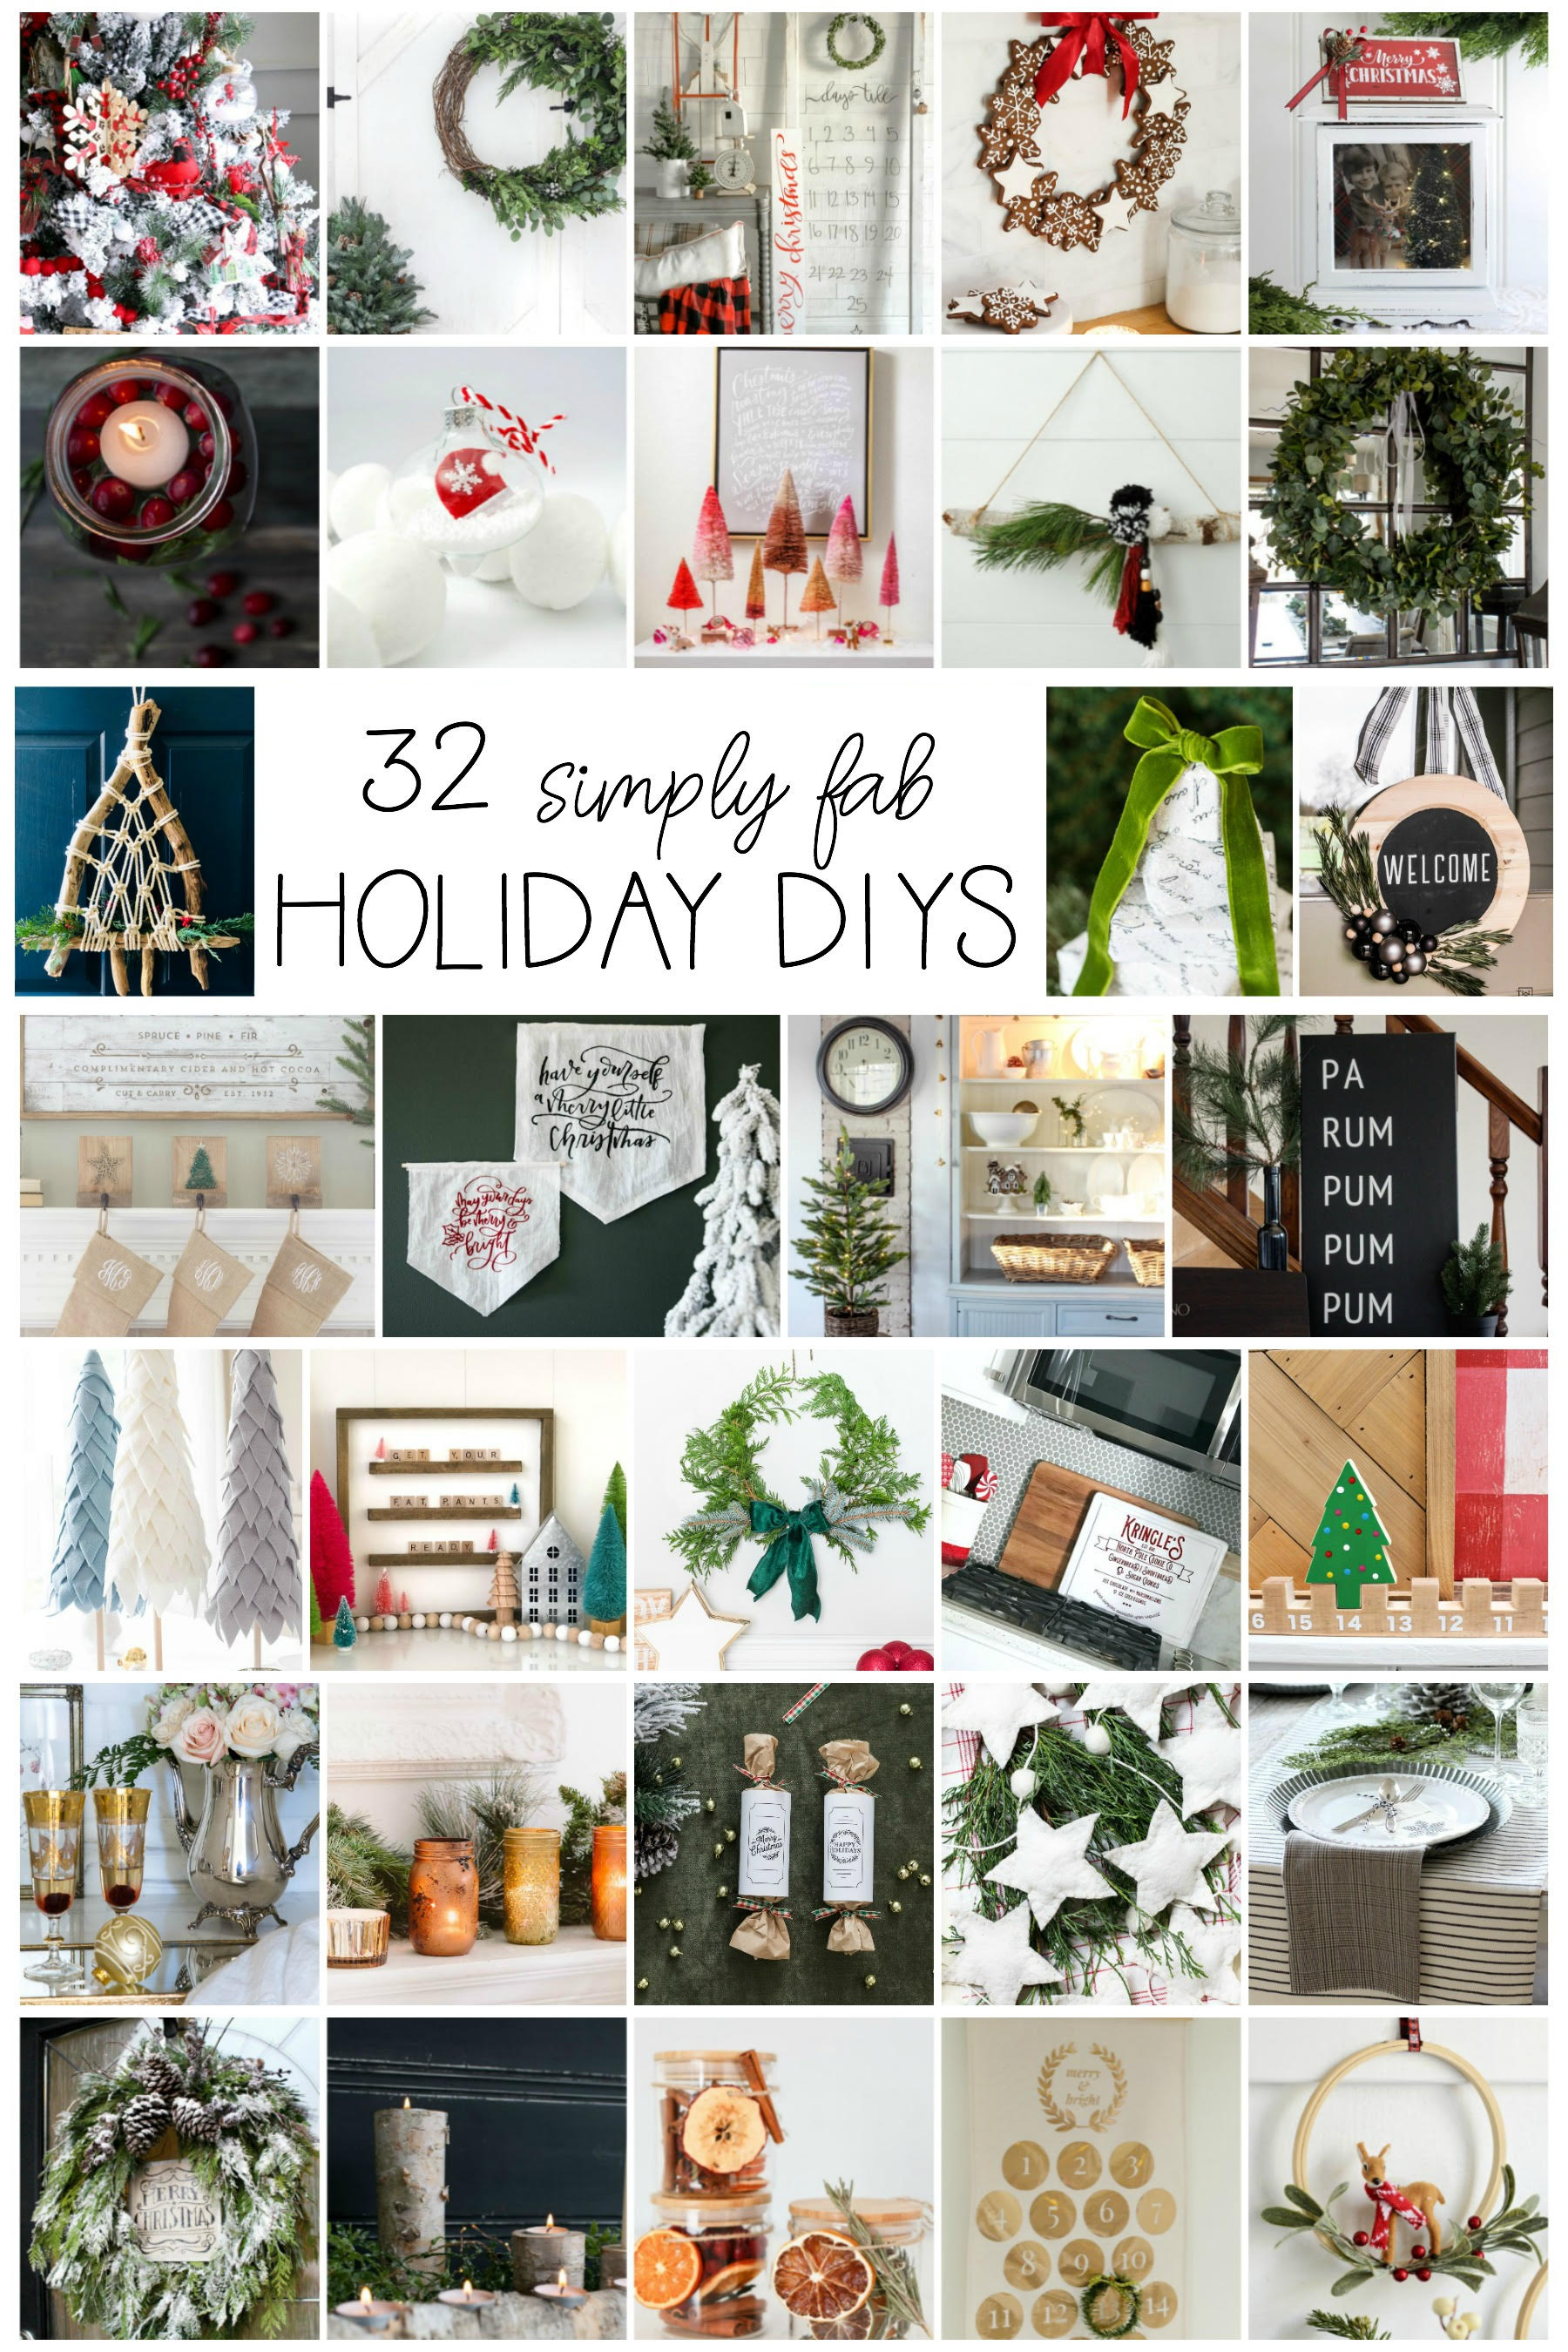 32 Simply Fab HOLIDAY DIY's to try this season! From home decor to crafts and EVERYTHING in between, you'll love this collection of truly FAB DIY's! #diy #holidaydiy #christmasdiy #christmasdecorations